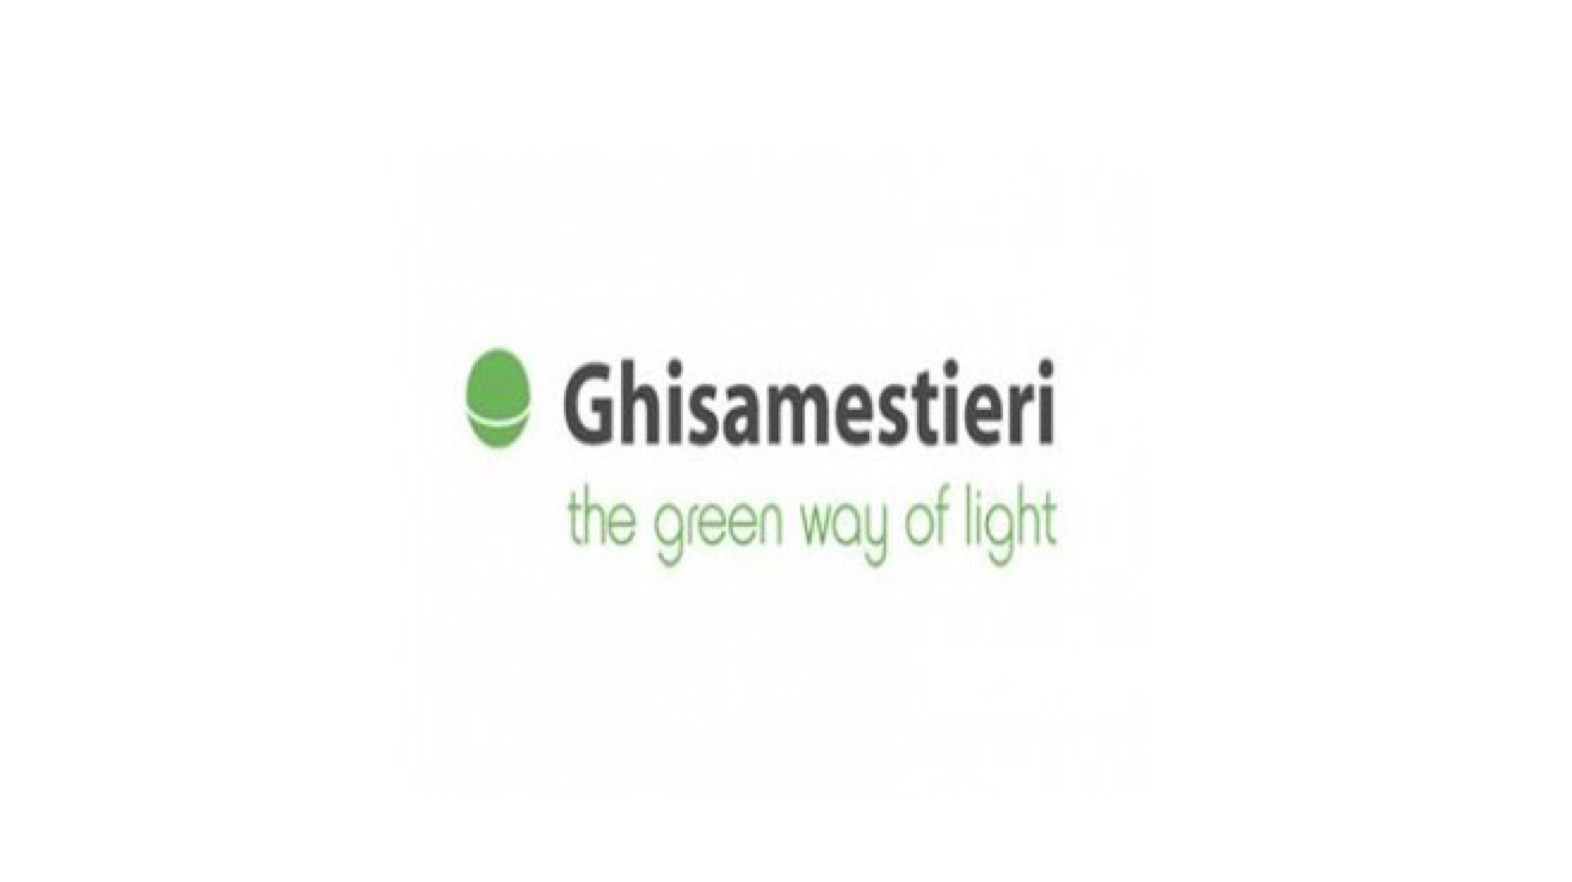 GHISAMESTIERI THE GREEN WAY OF LIGHT SRL